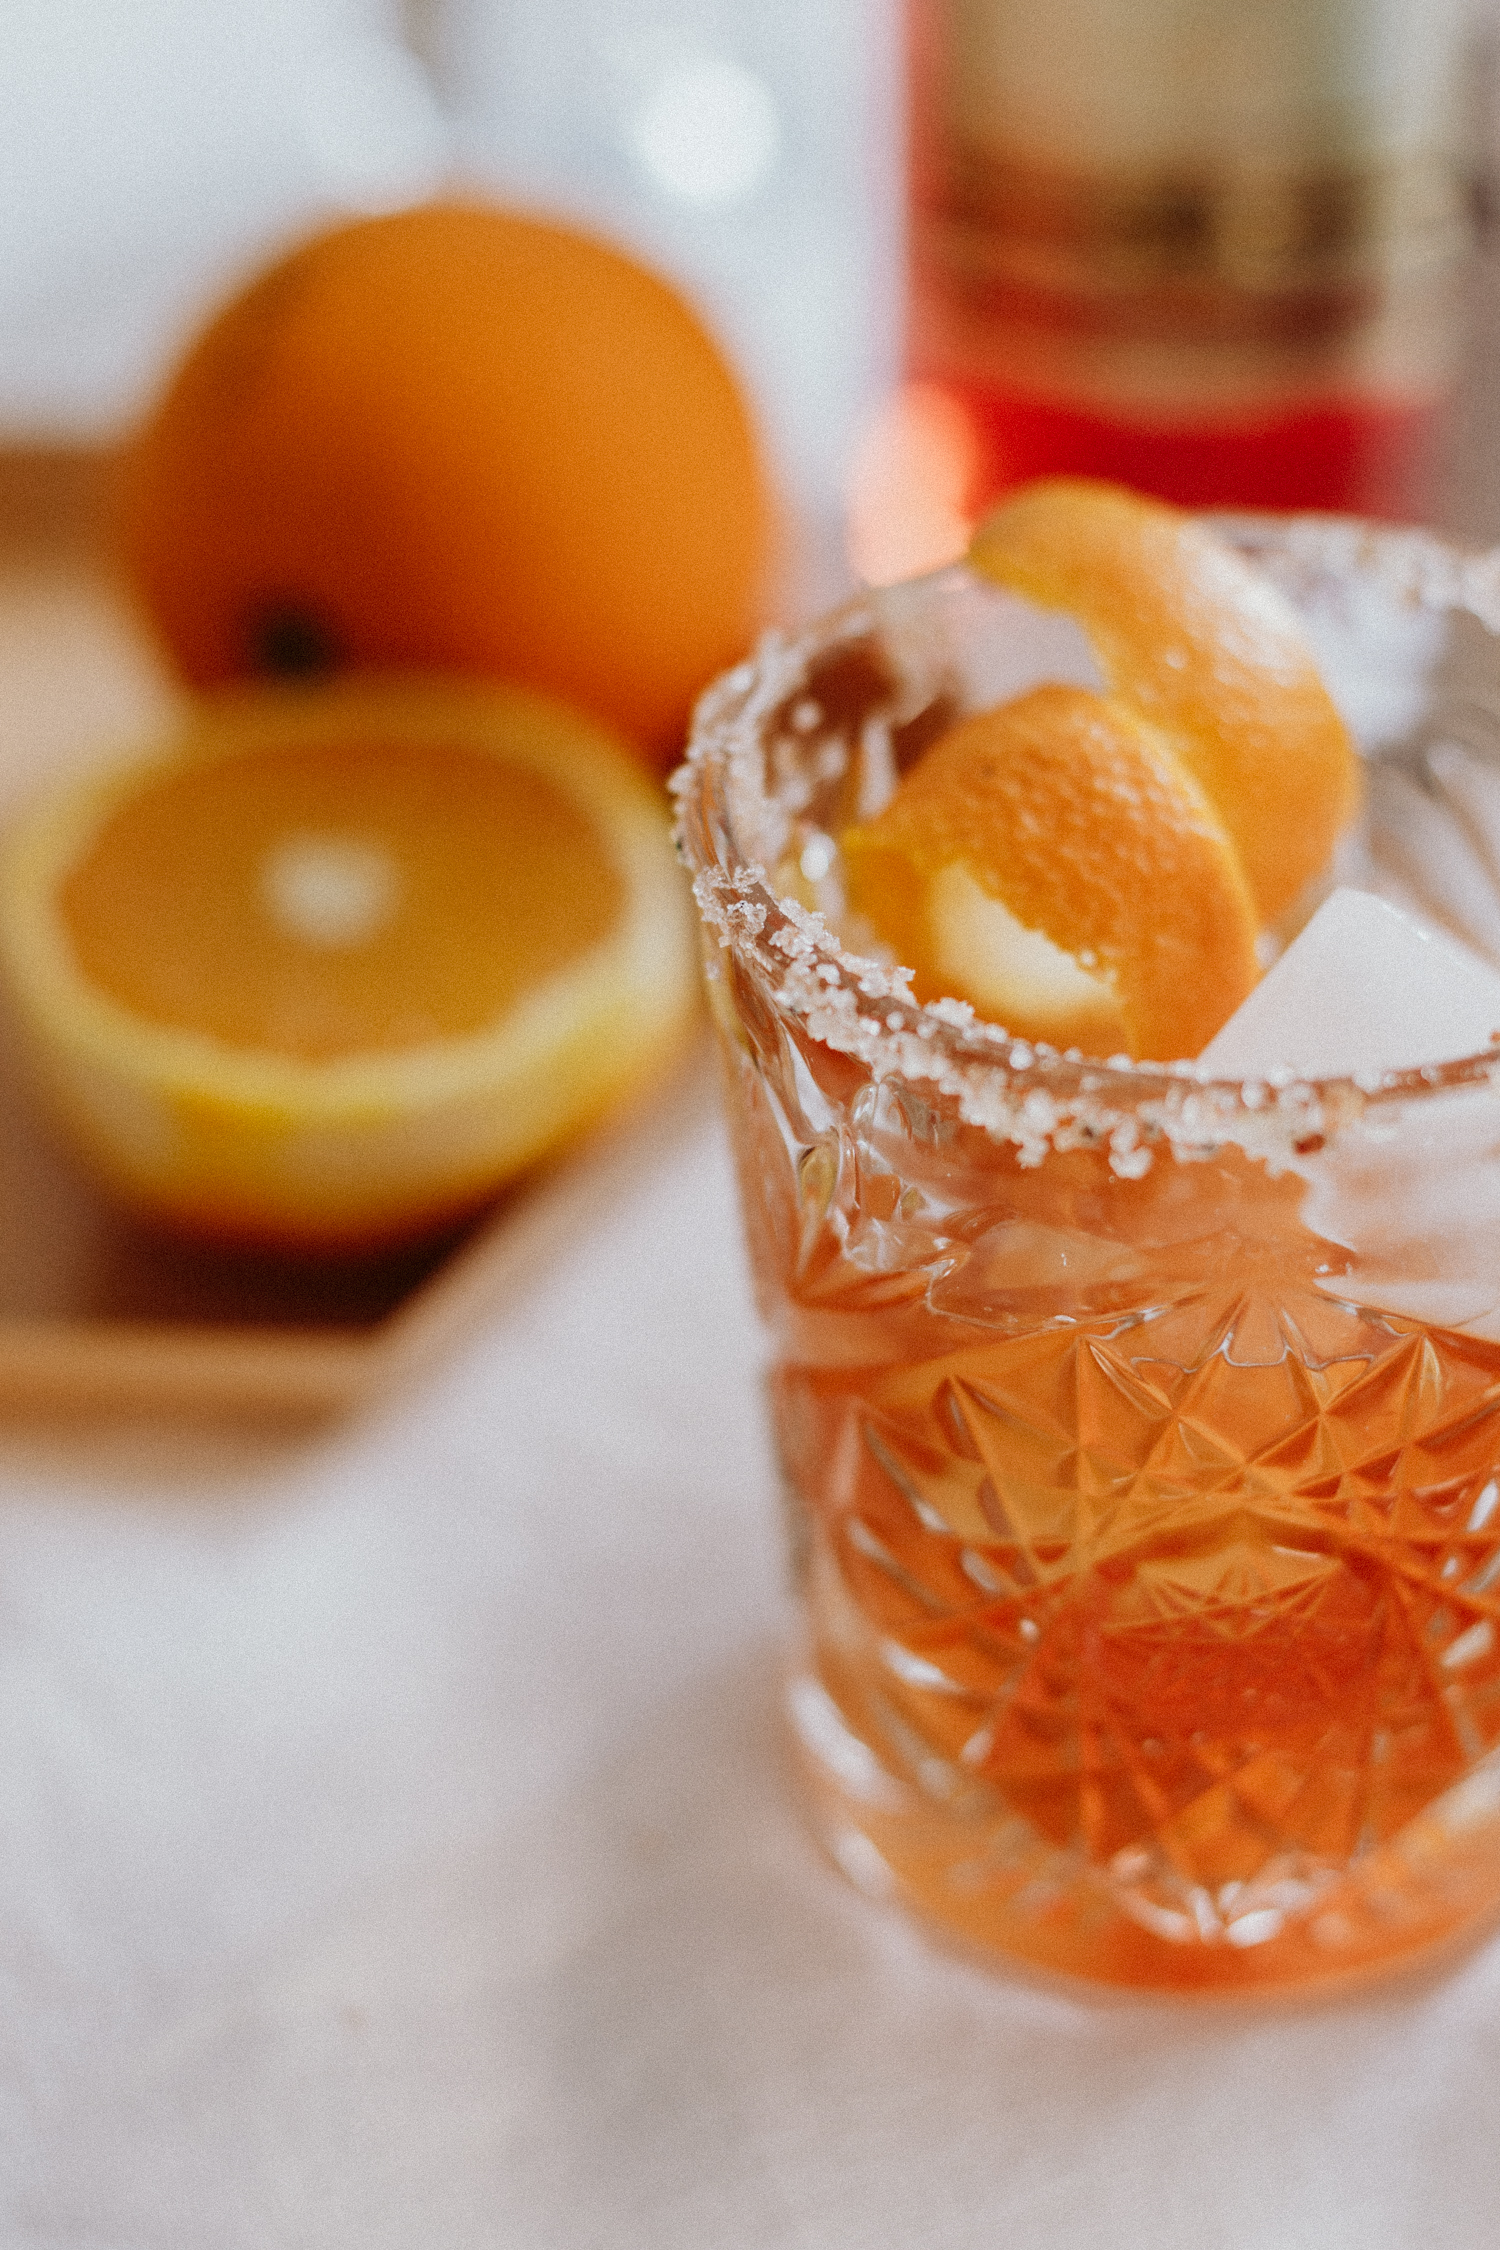 Salted Negroni Recipe: A cocktail classic with a twist - Love Daily Dose